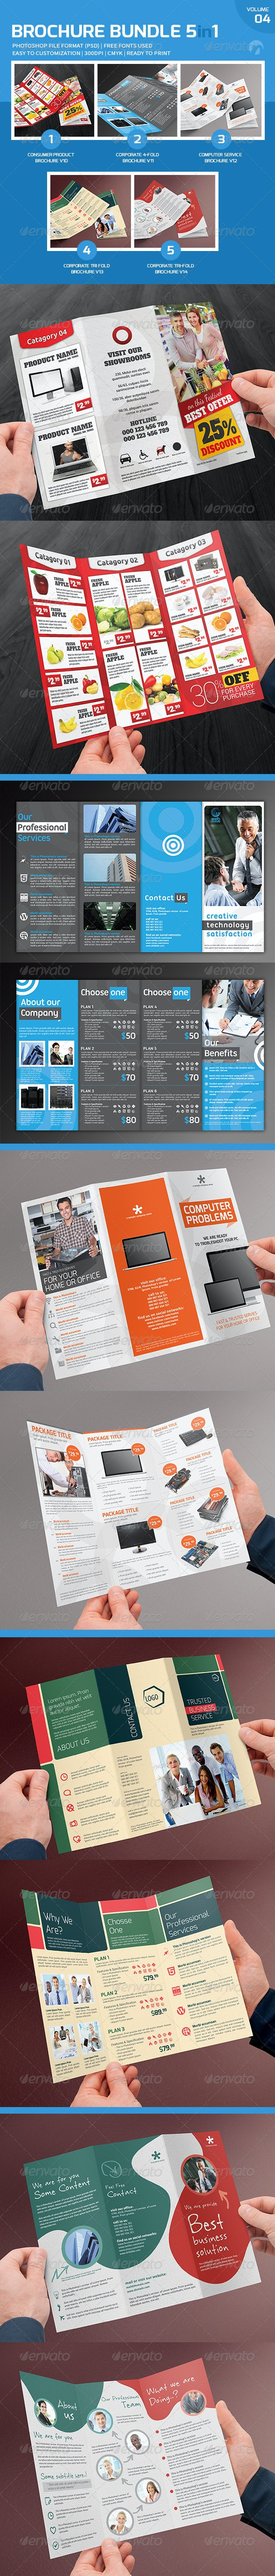 Brochure Bundle 5in1 V4 - Corporate Brochures